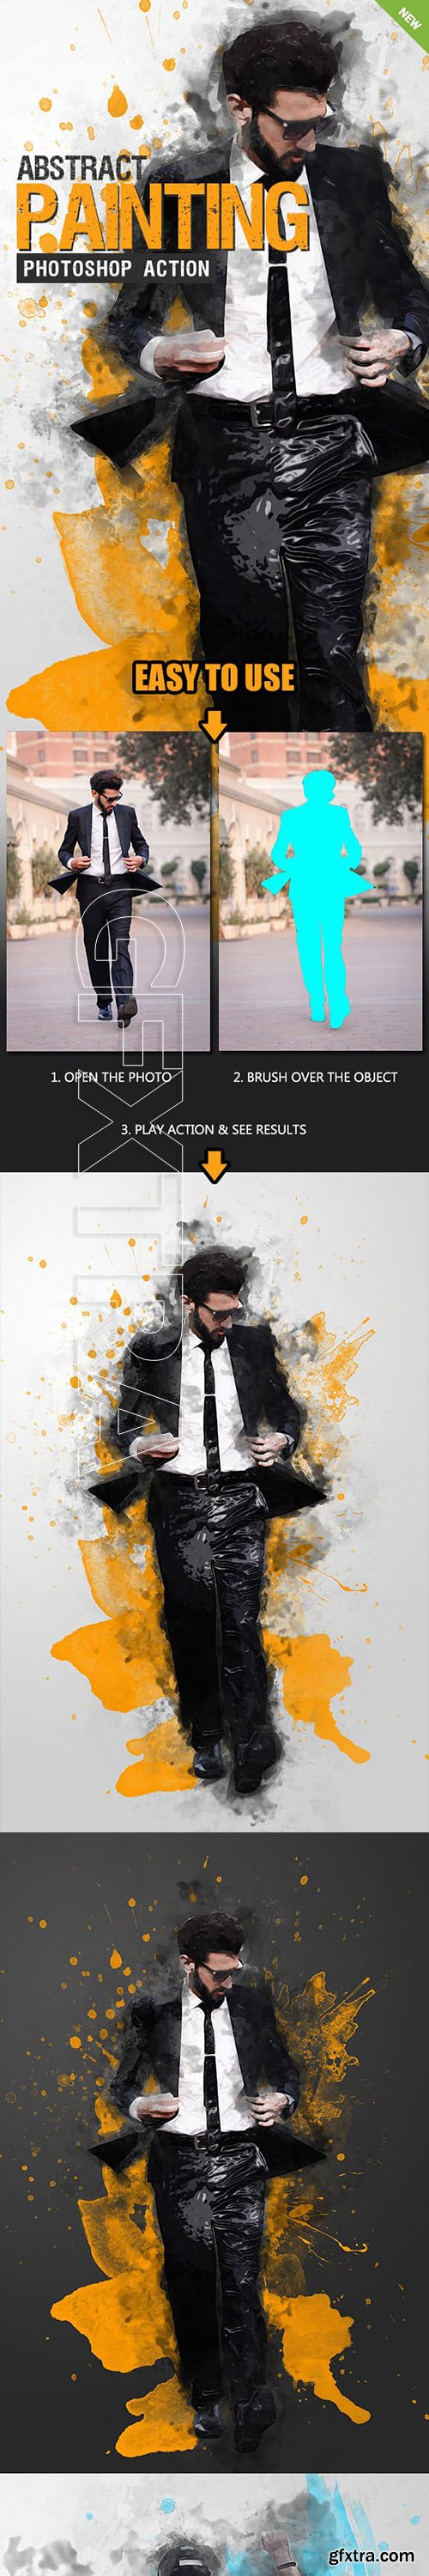 GraphicRiver - Abstract Painting Photoshop Action 23212791